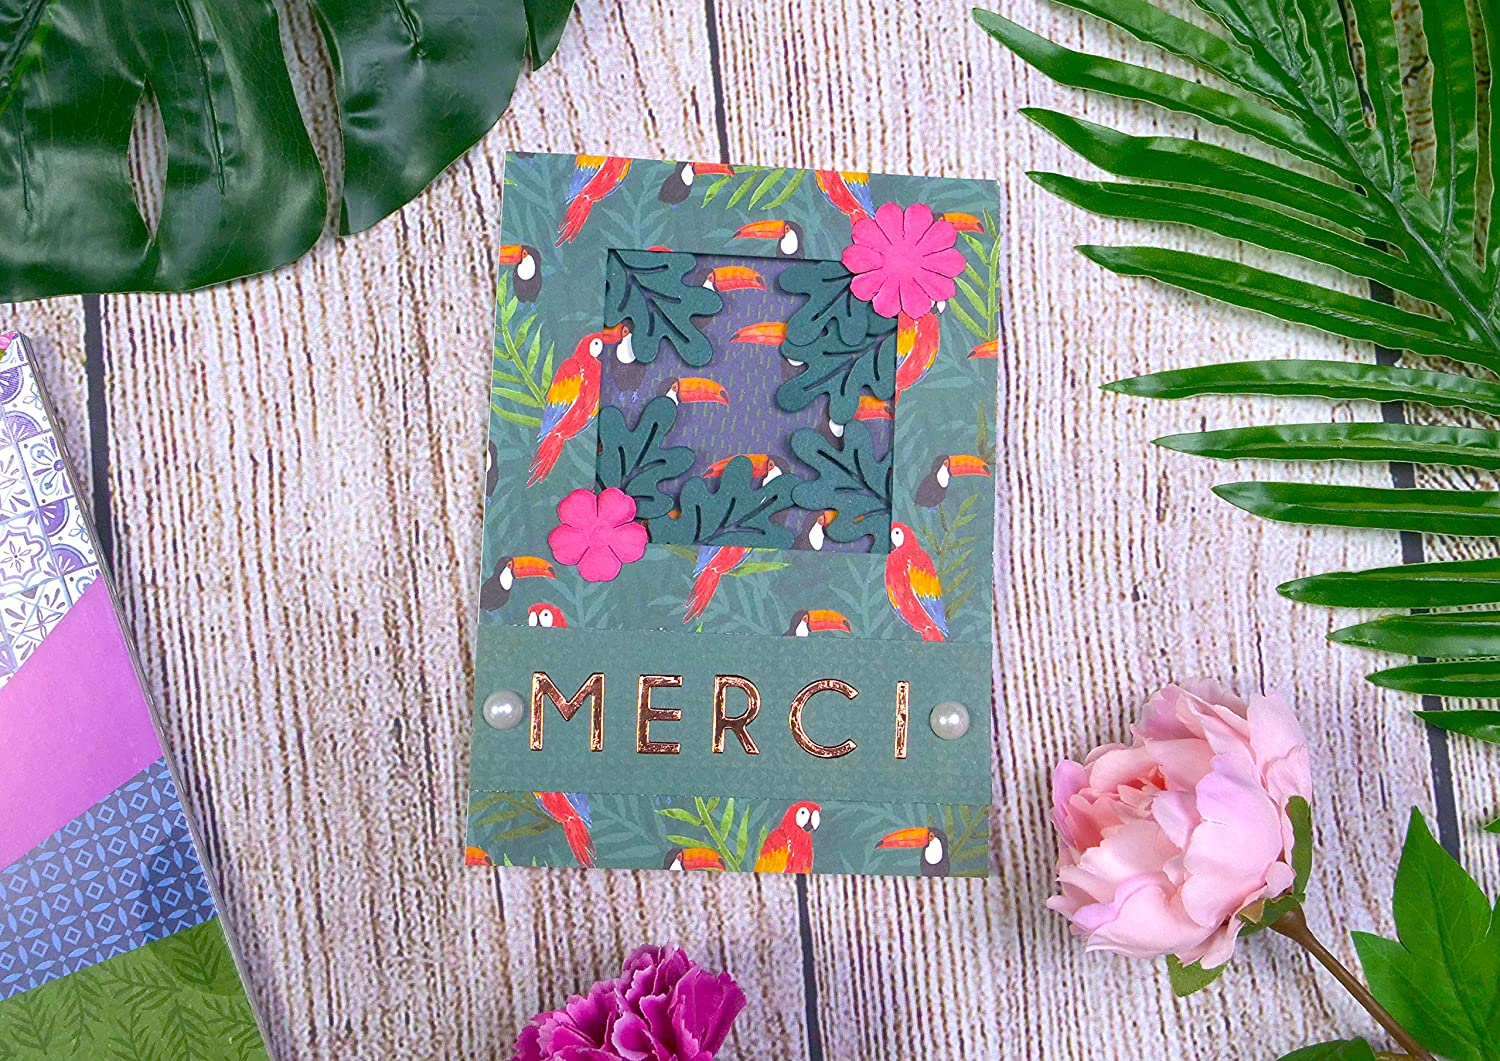 Scrapbooking Paper Addicts Tropical Bliss Paper Pad-30 Sheets-15 Designs-100GSM-Acid /& Lignin Free-for Card Making Multicolour Die Cutting and Home D/écor 6x6 Papercraft